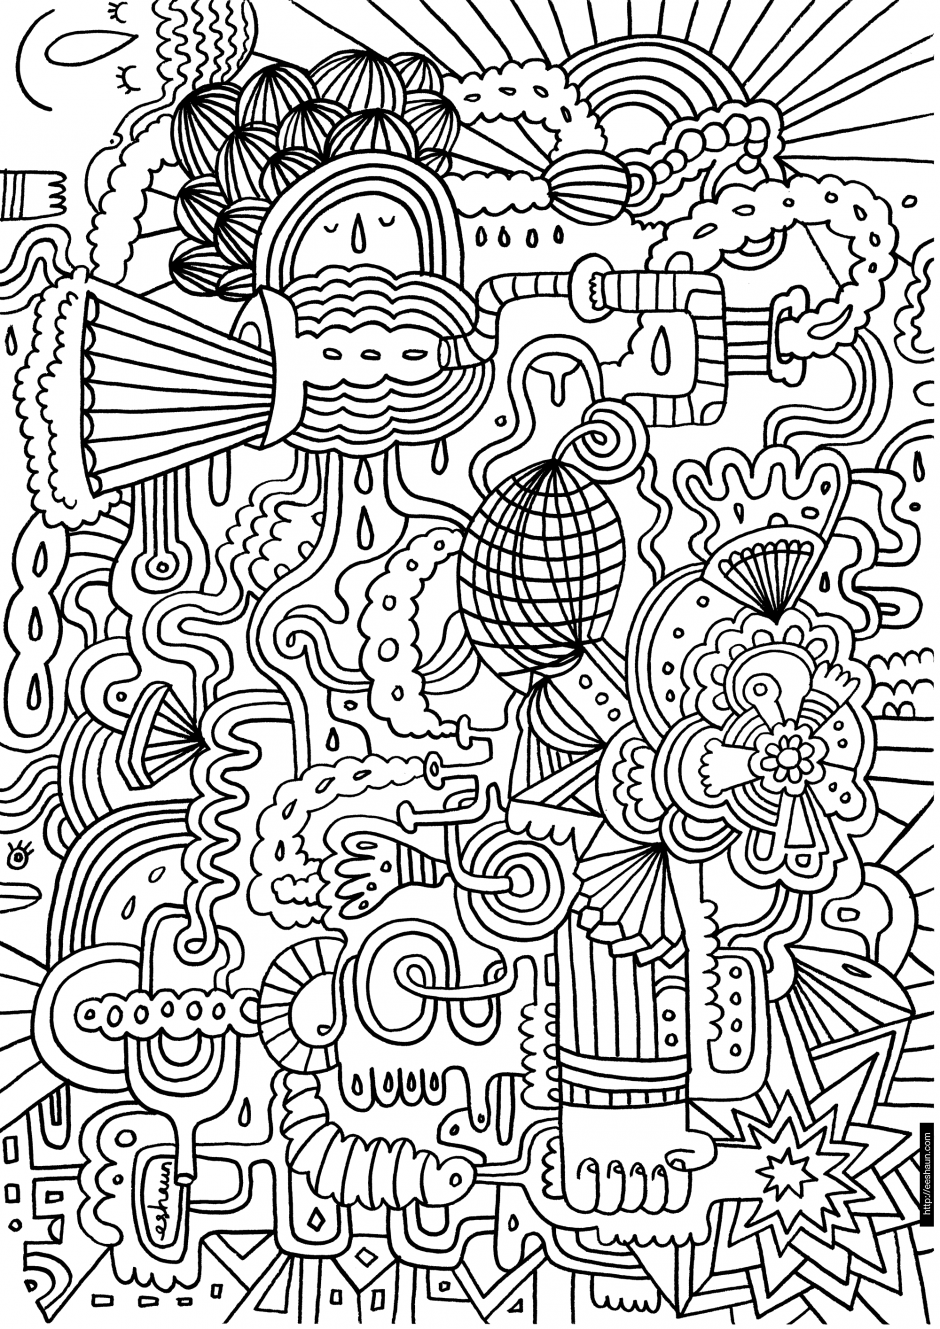 wwwfree coloring pagescom coloring pages tom jerry animated images gifs pagescom wwwfree coloring